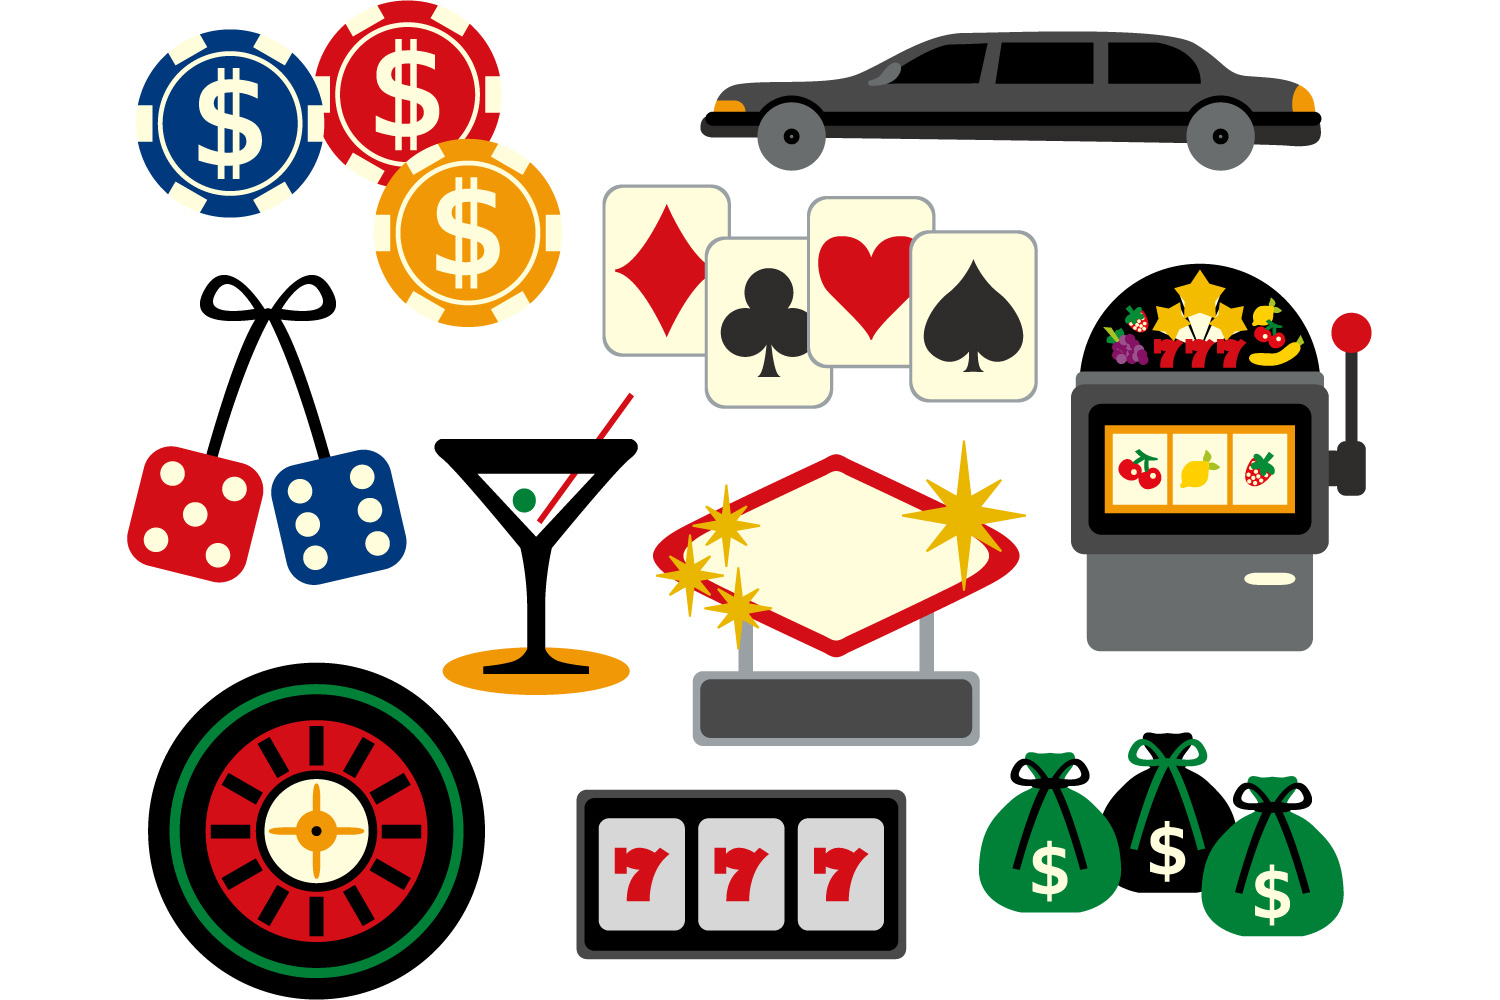 Las vegas clipart. Viva graphic casino design